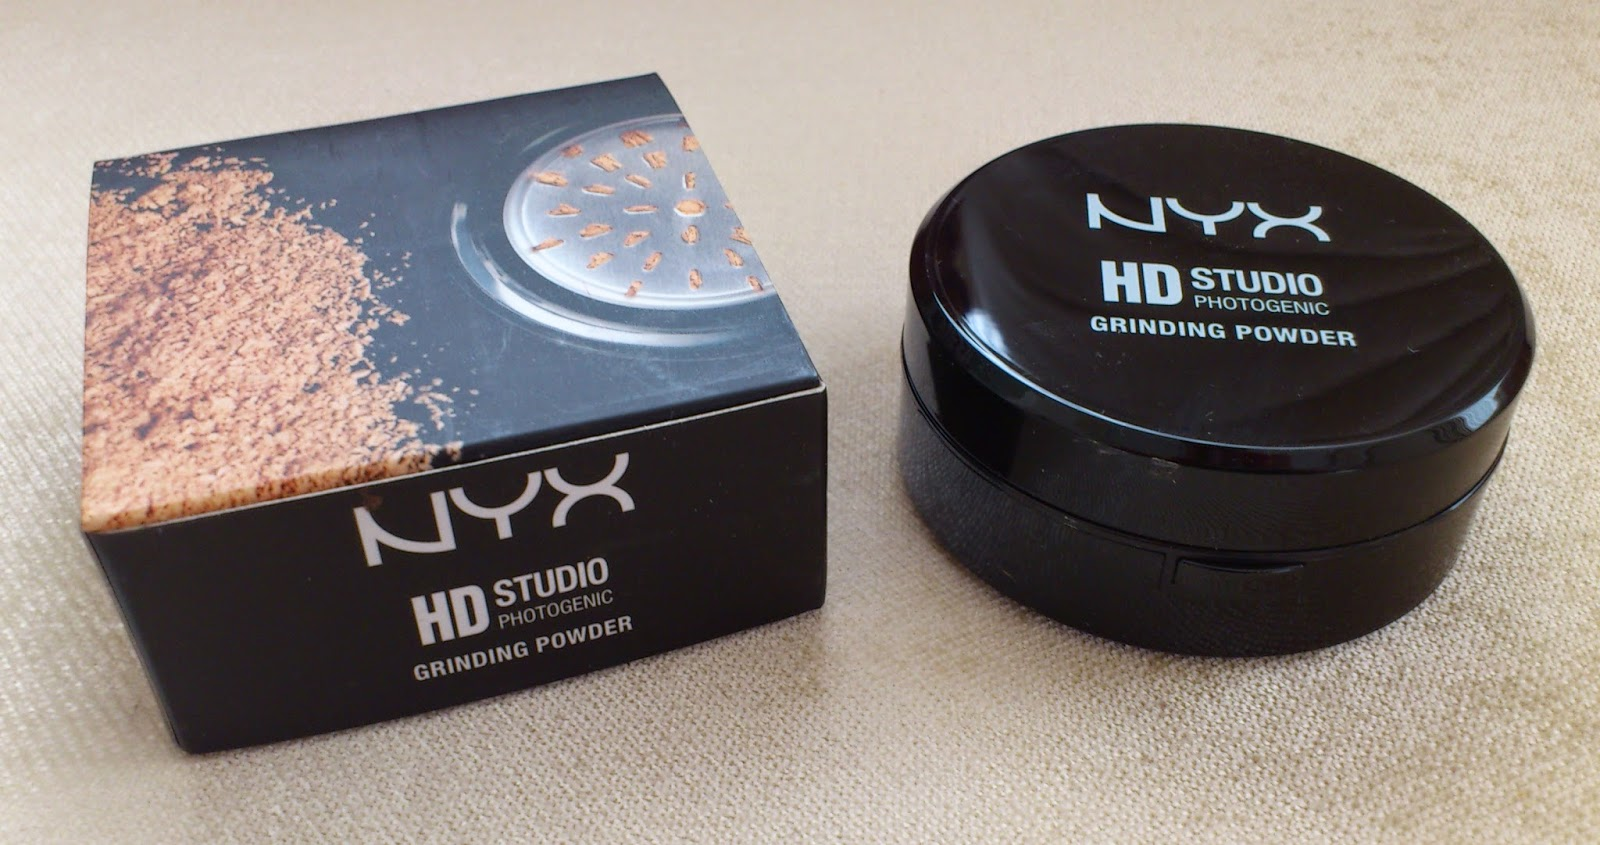 NYX HD Studio Photogenic Grinding Powder